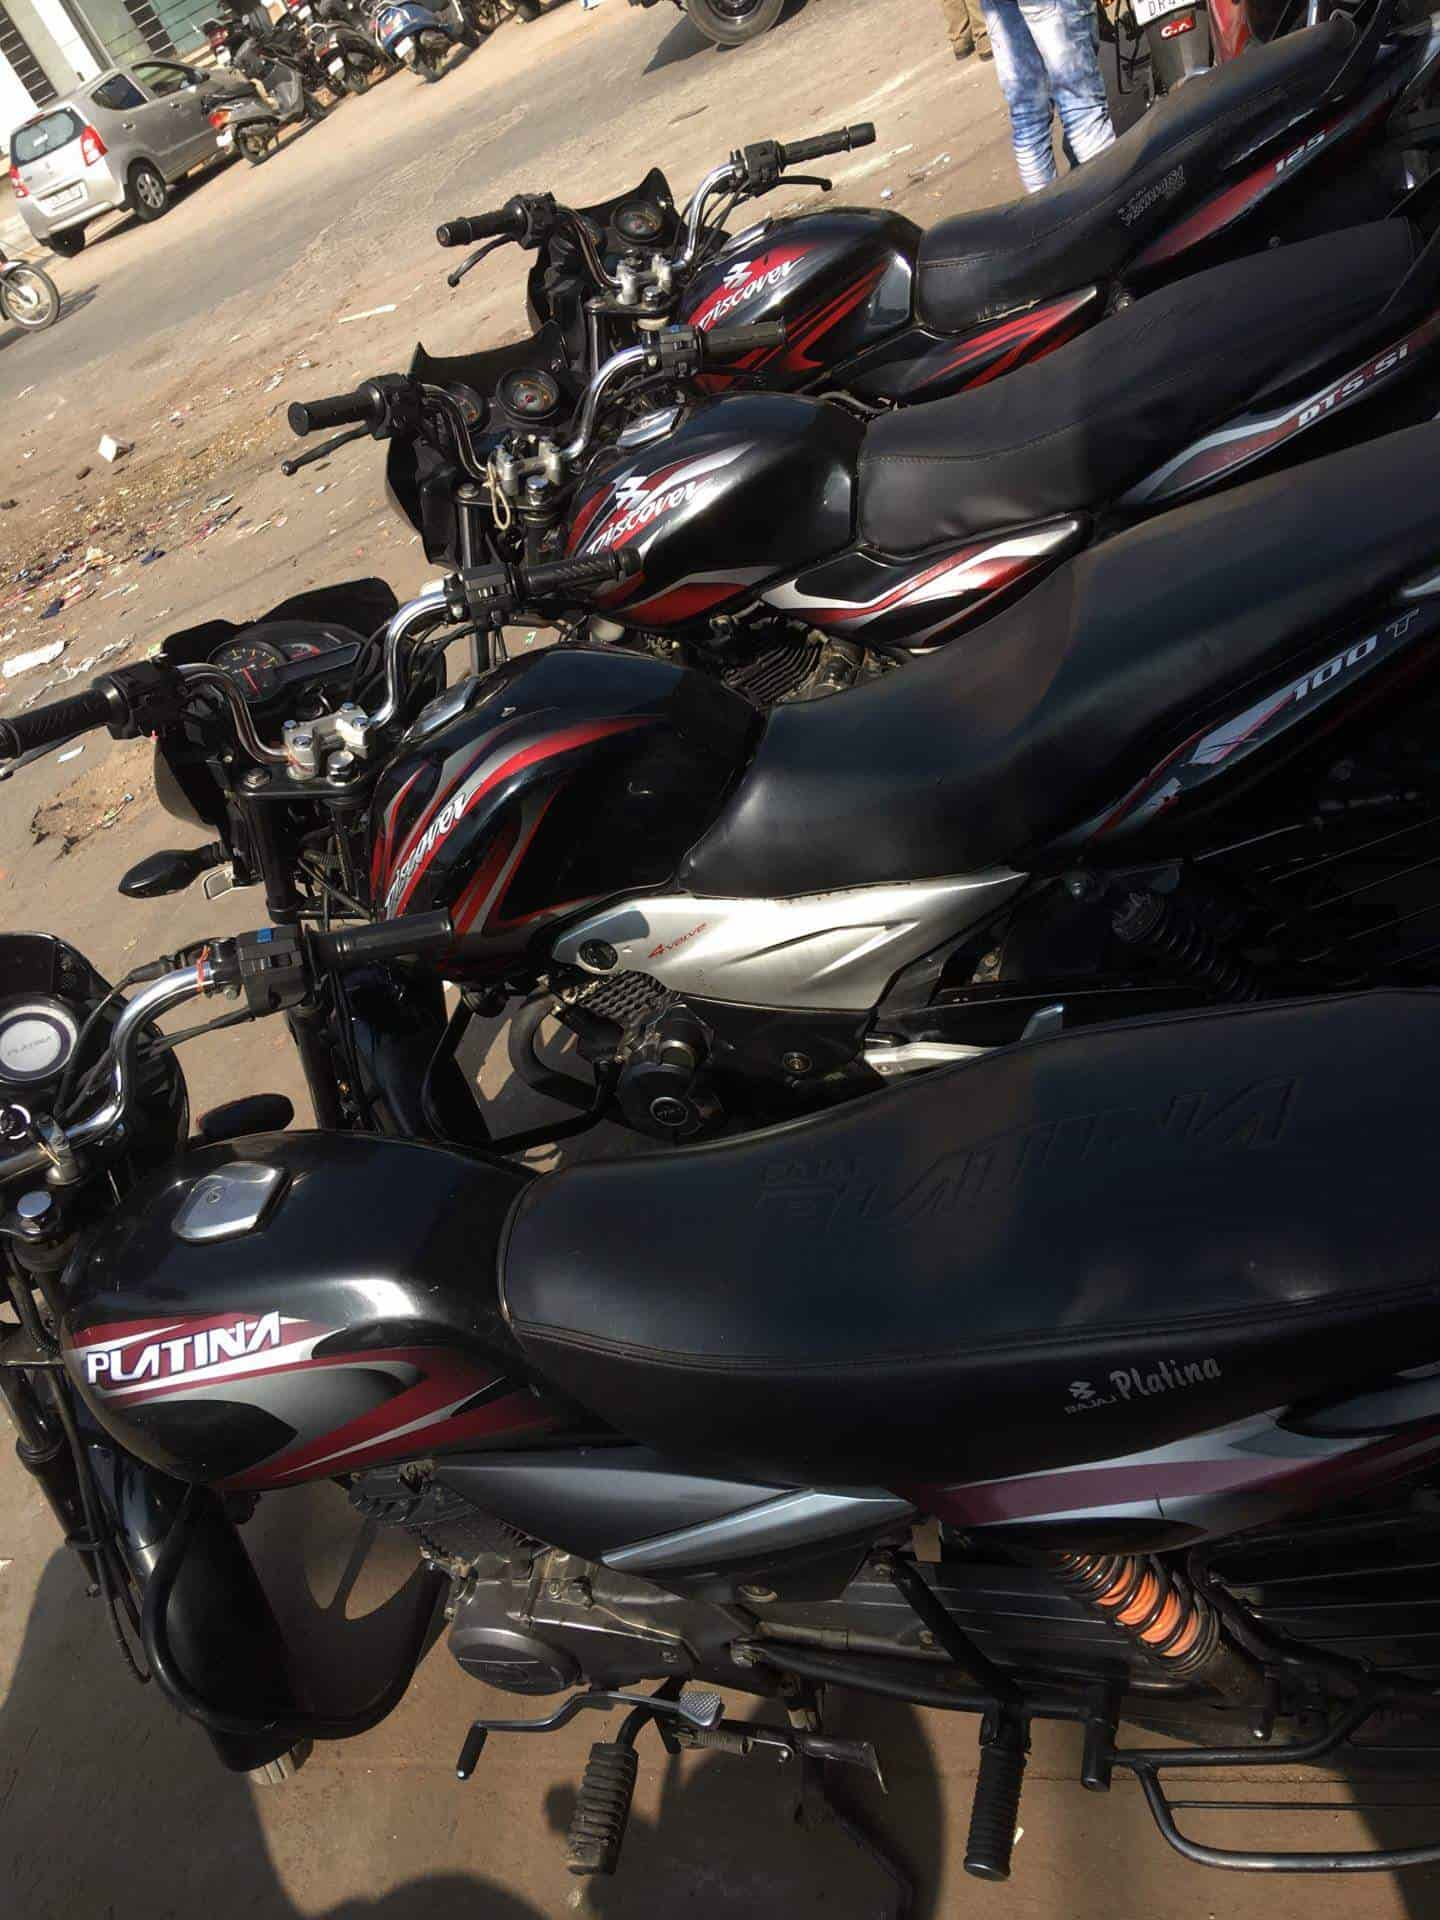 R K Auto Broker Photos, M I Road, Jaipur- Pictures & Images